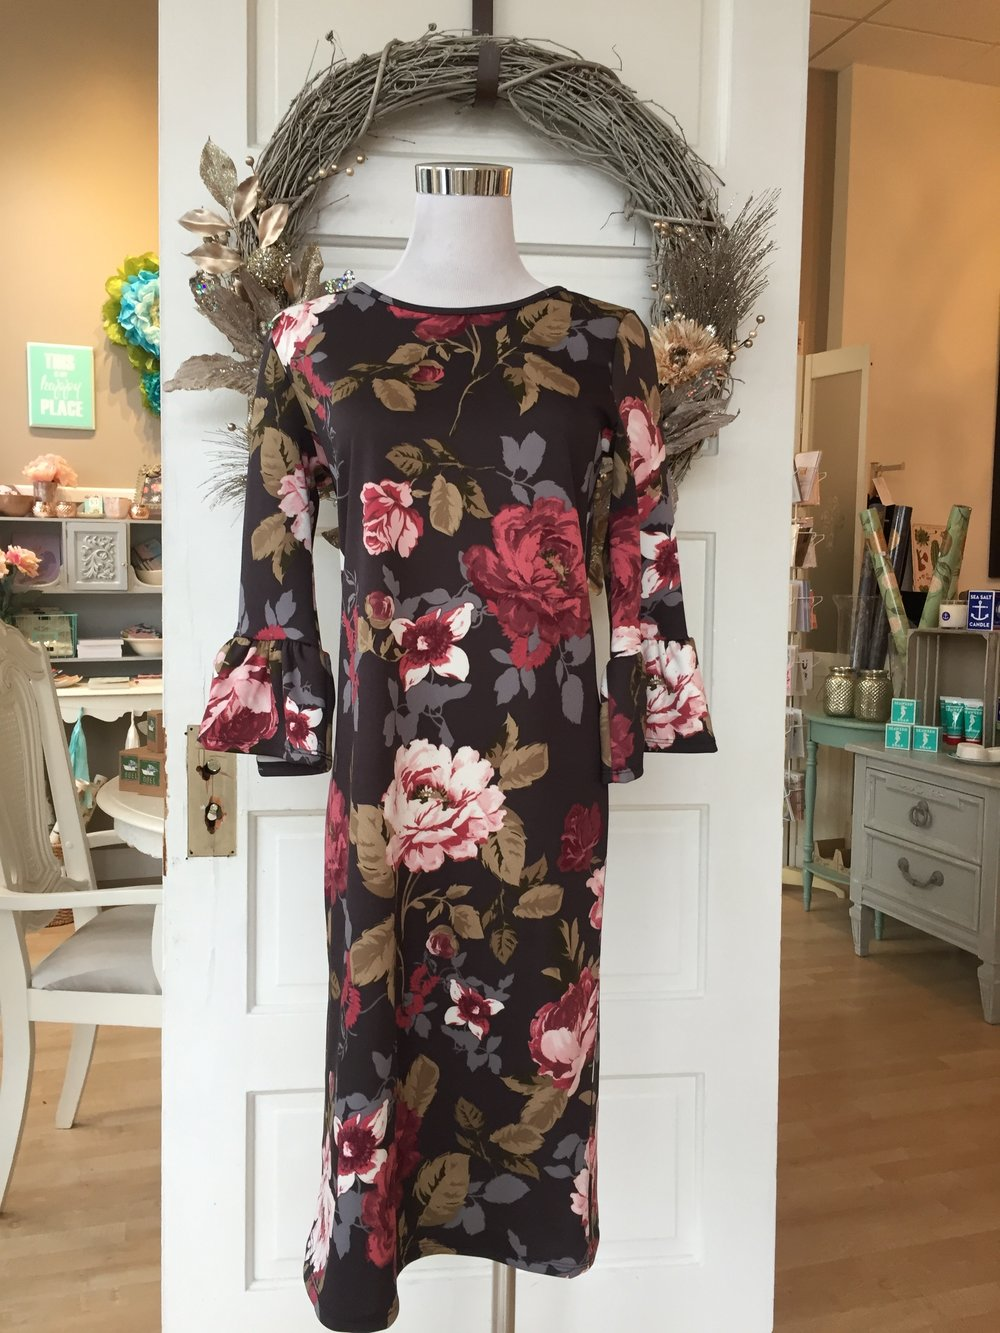 Les Amis Floral Dress $38